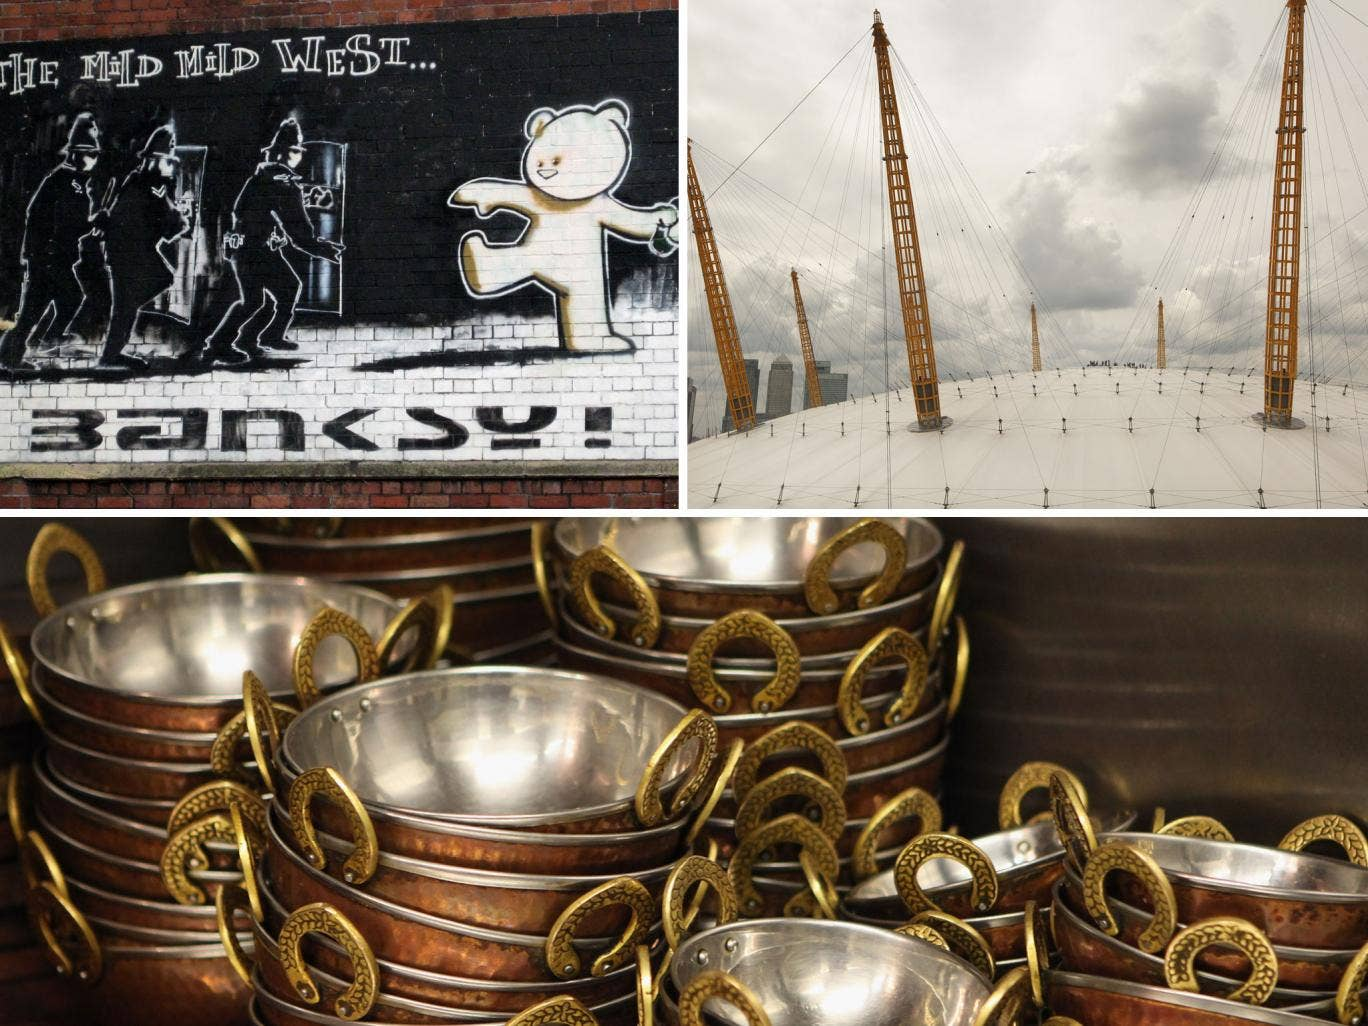 Banksy, the Dome and curry are three of the things that symbolise the best of England